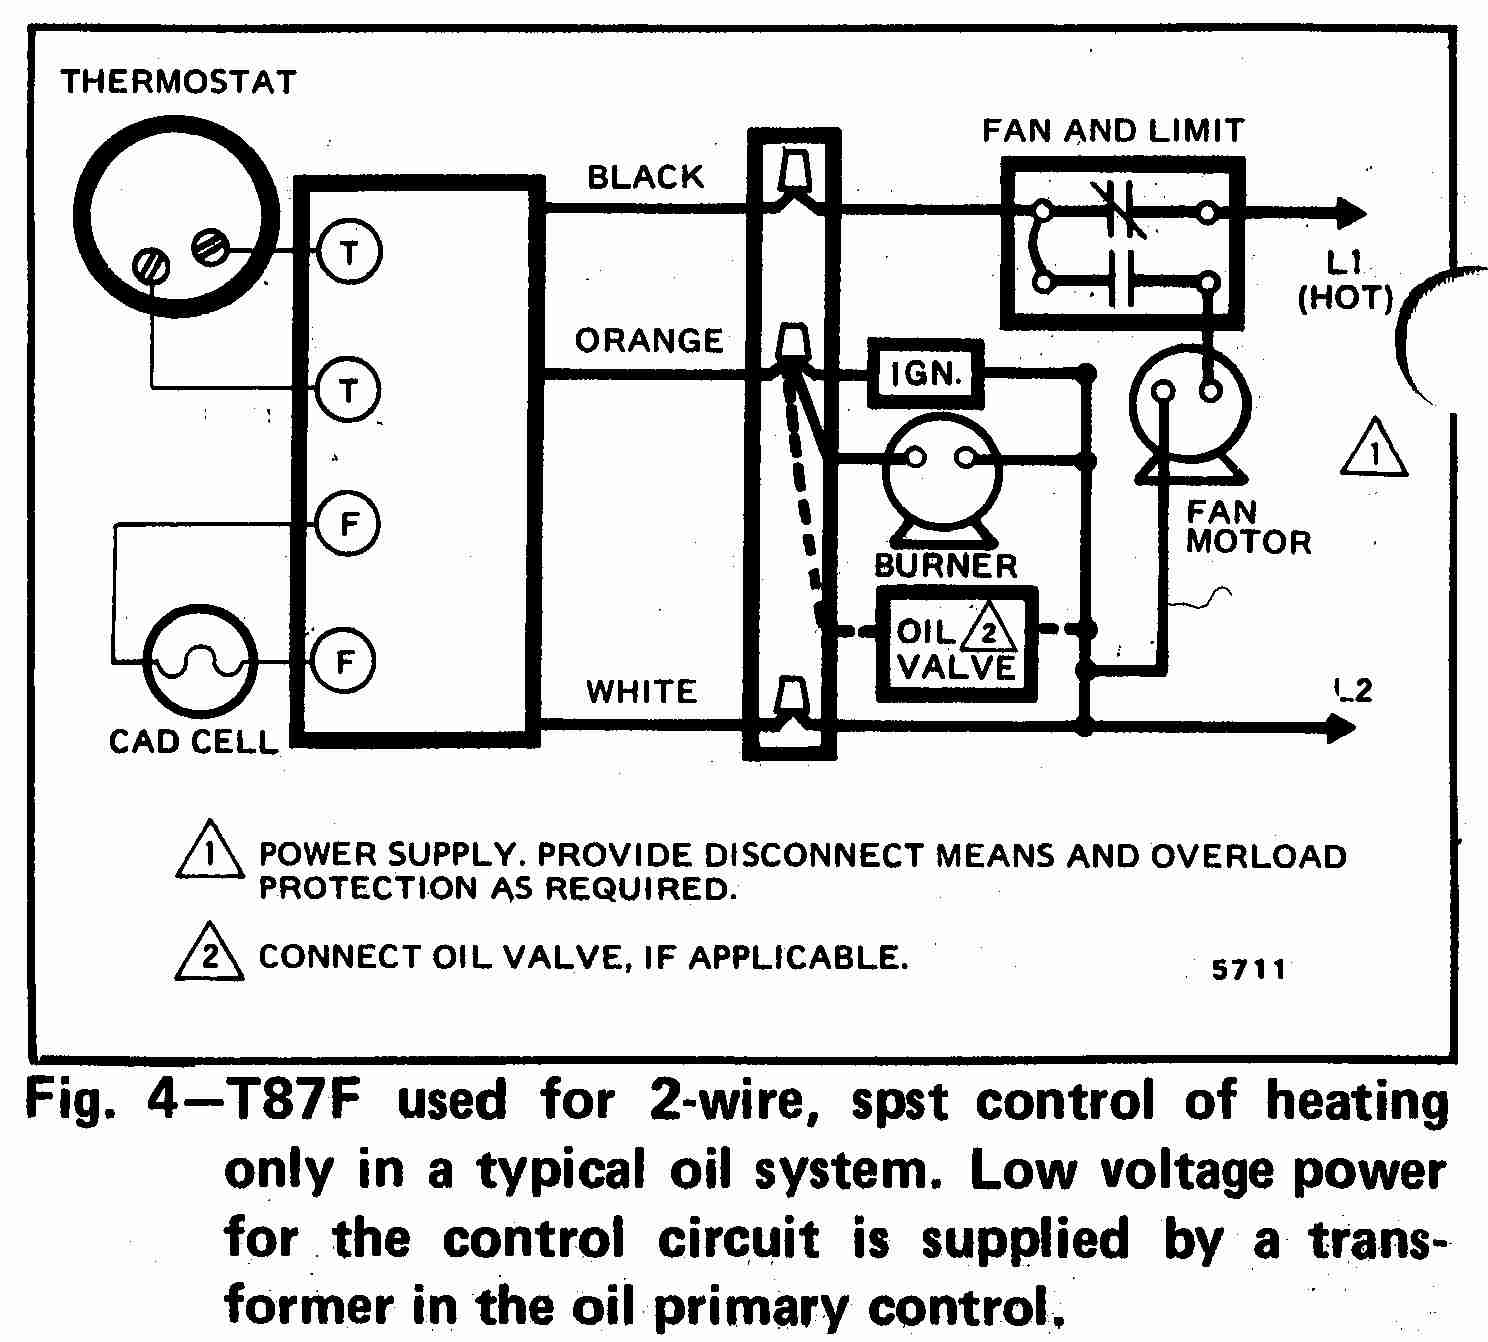 room thermostat wiring diagrams for hvac systems rh inspectapedia com Heat Pump Thermostat Wiring Wiring Up Thermostat